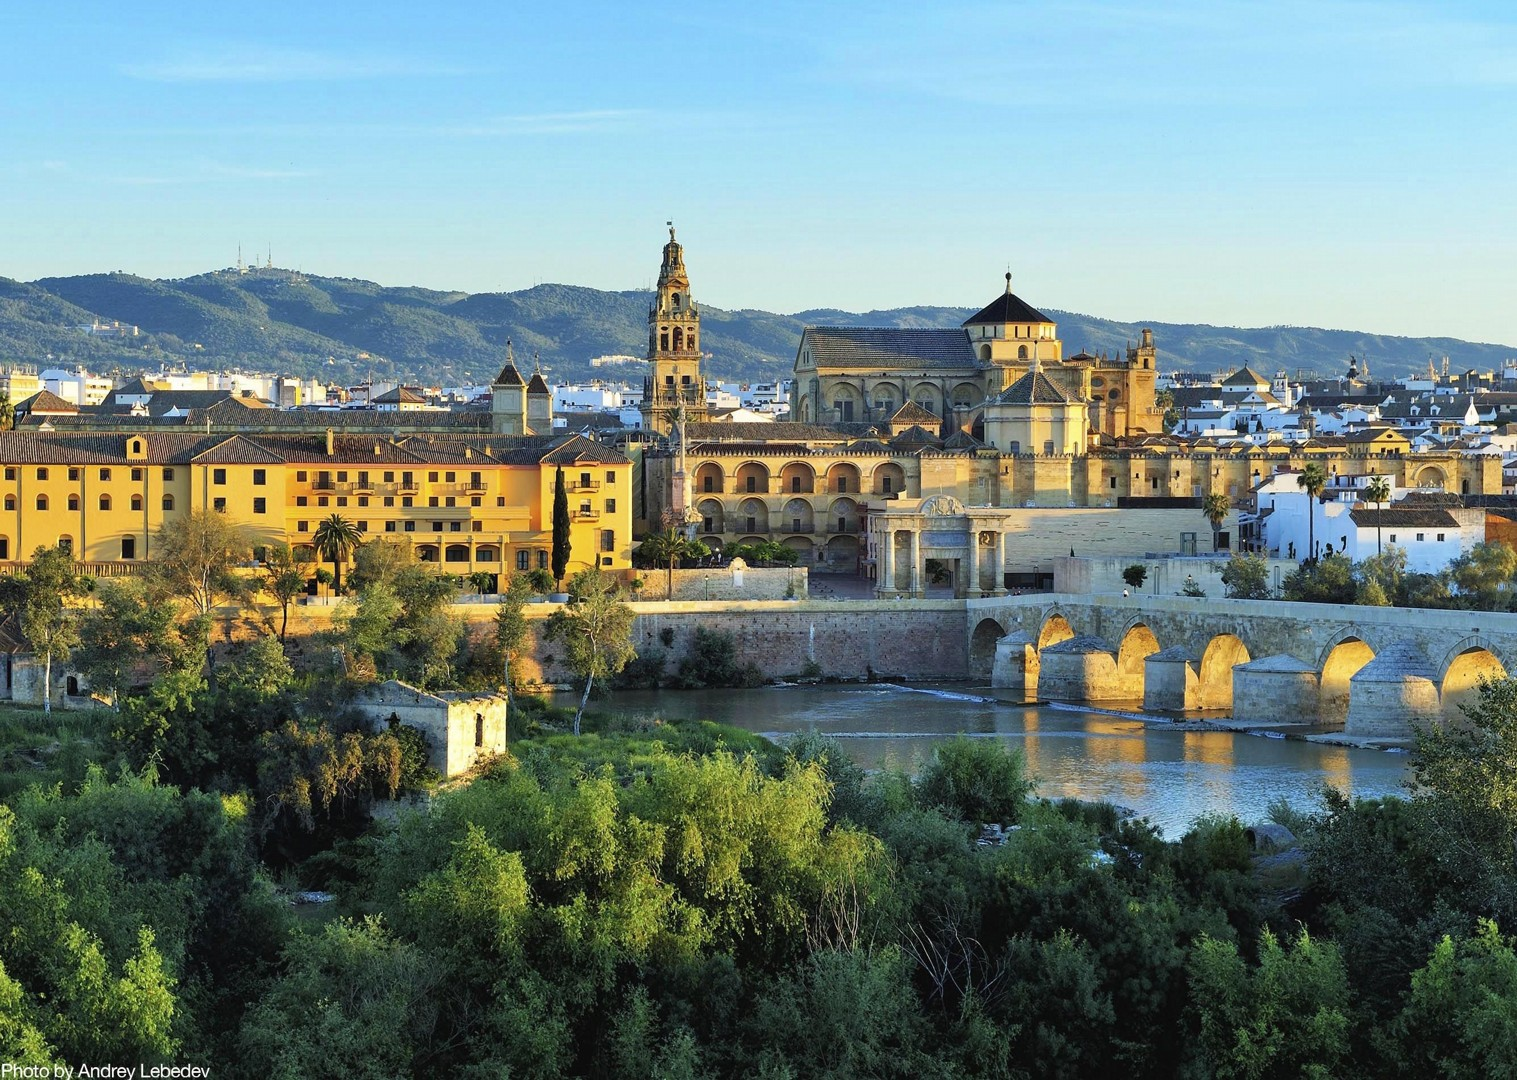 cordoba-granada-to-seville-guided-leisure-cycling-holiday-in-spain.jpg - Spain - Basque Country to Andalucia - North to South - 21 Day - Guided Road Cycling Holiday - Road Cycling